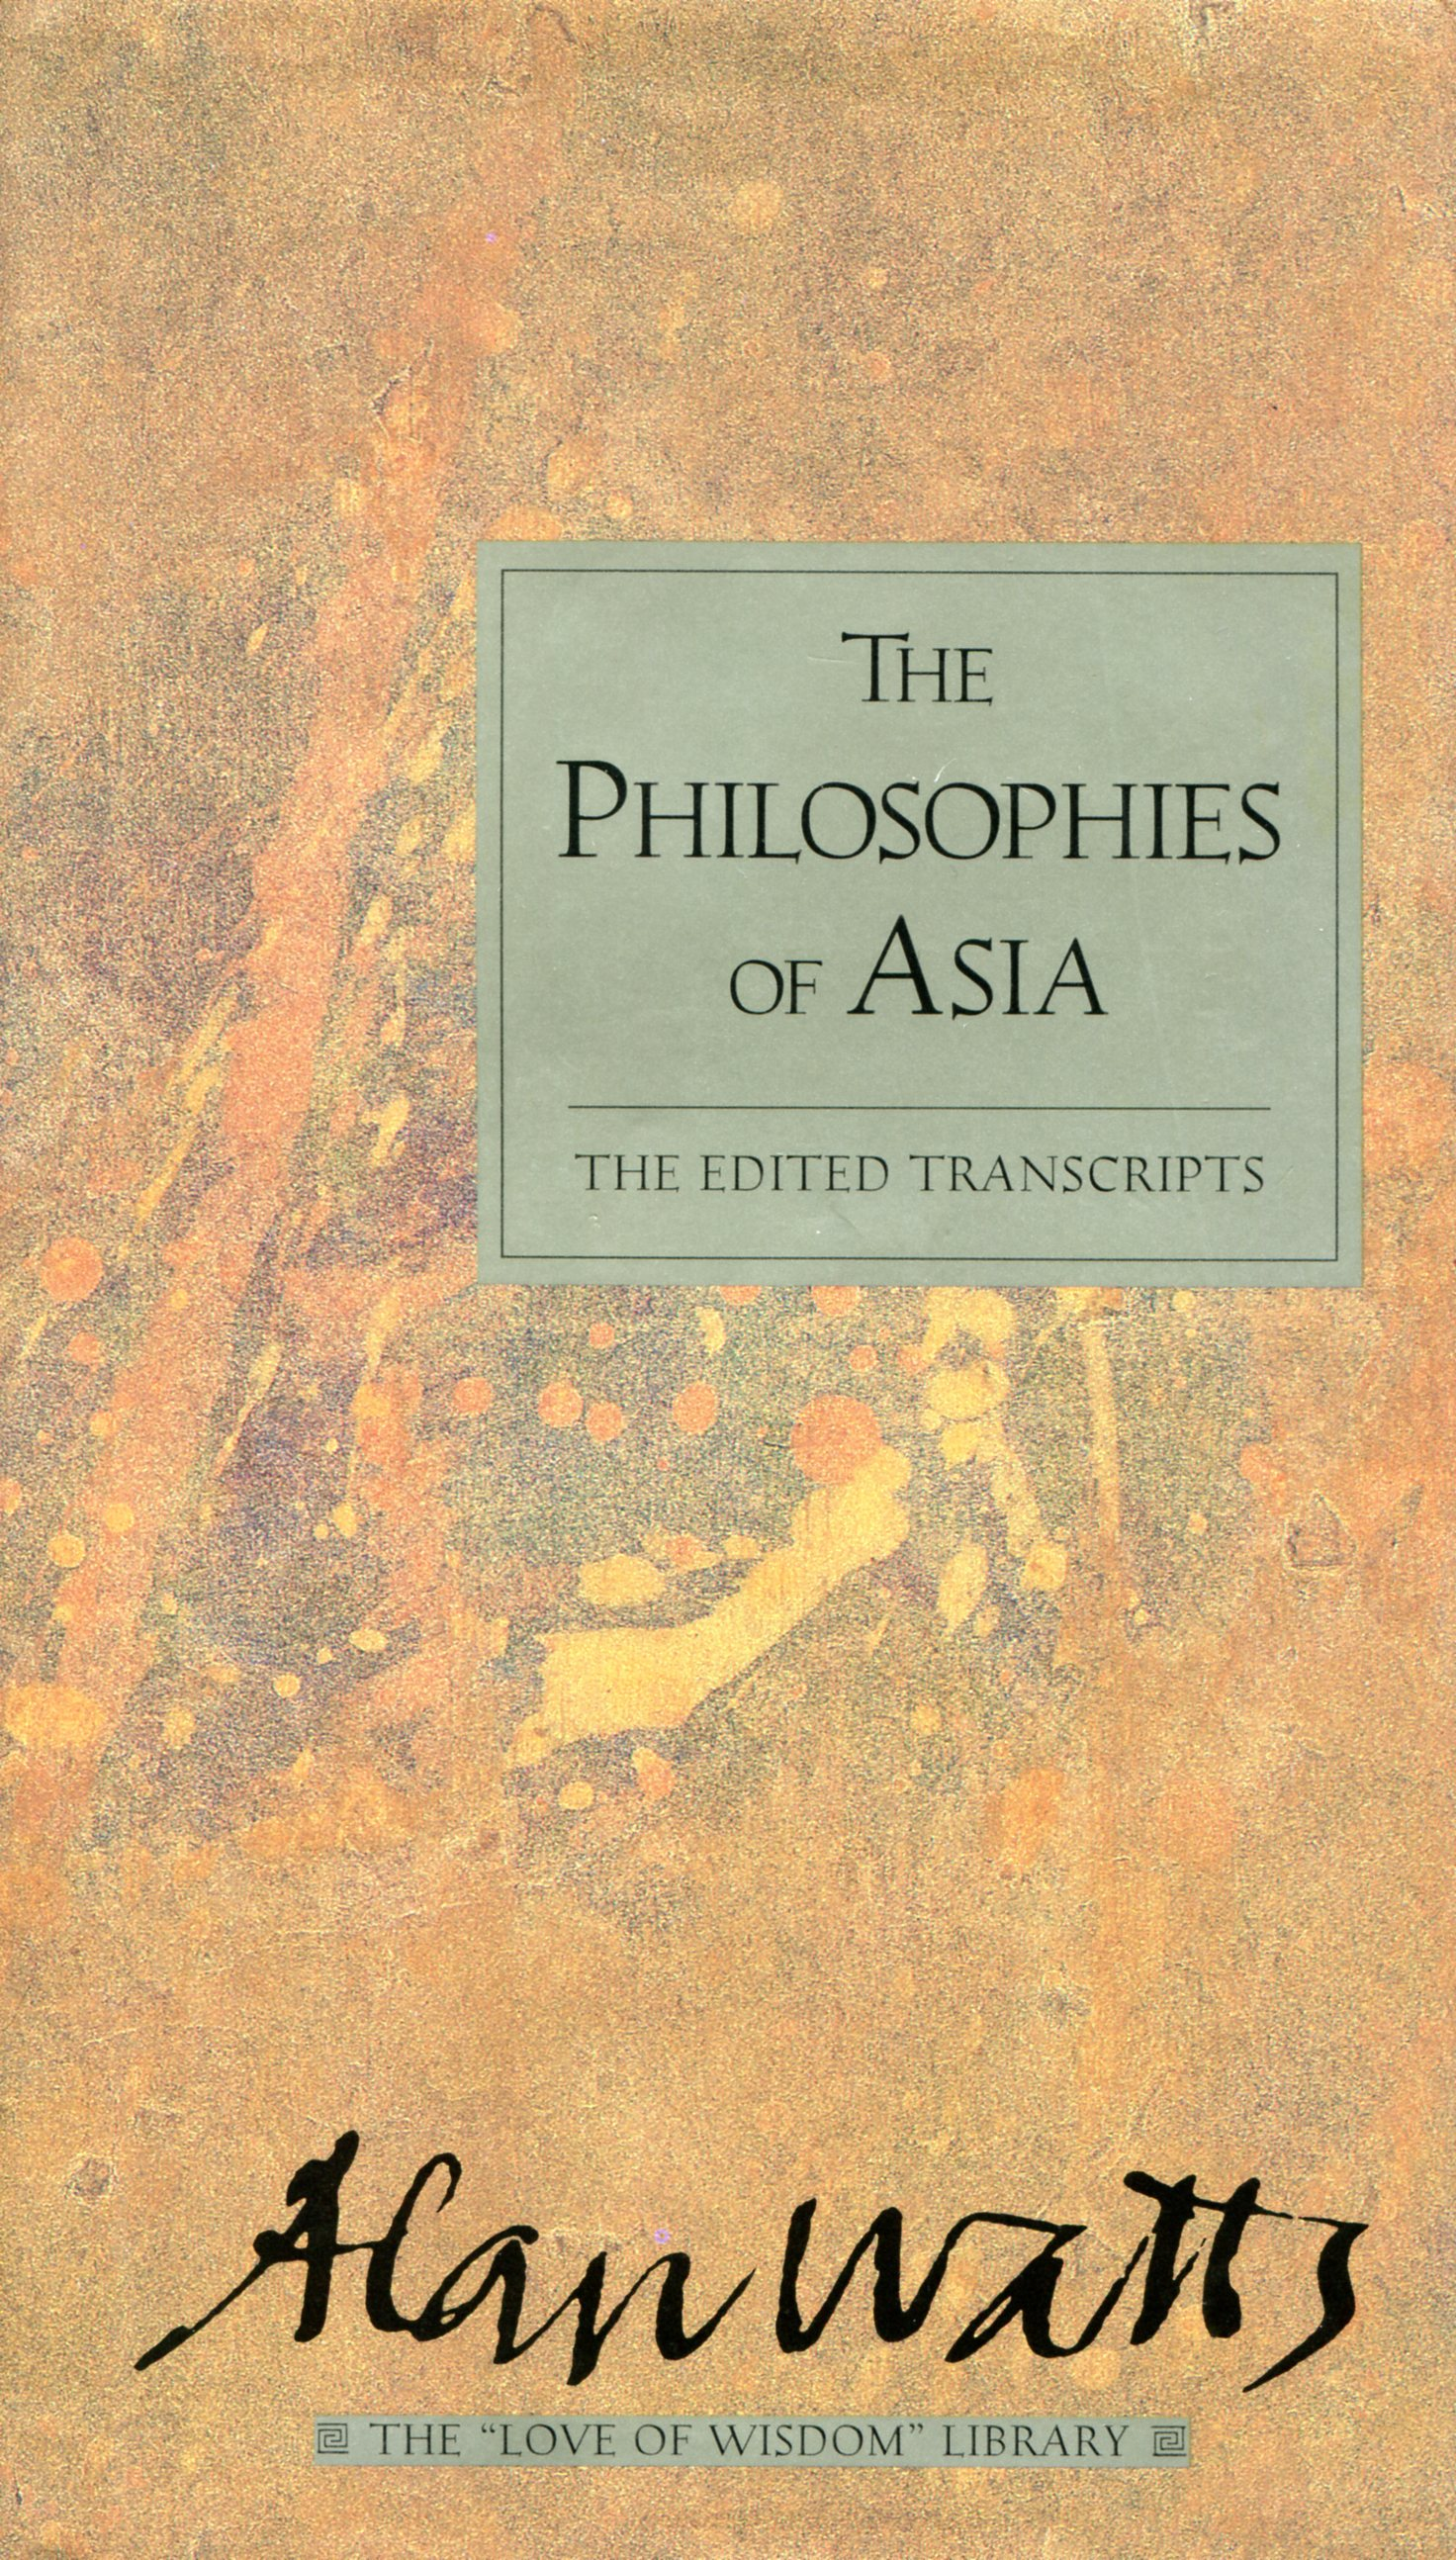 The Philosophies of Asia